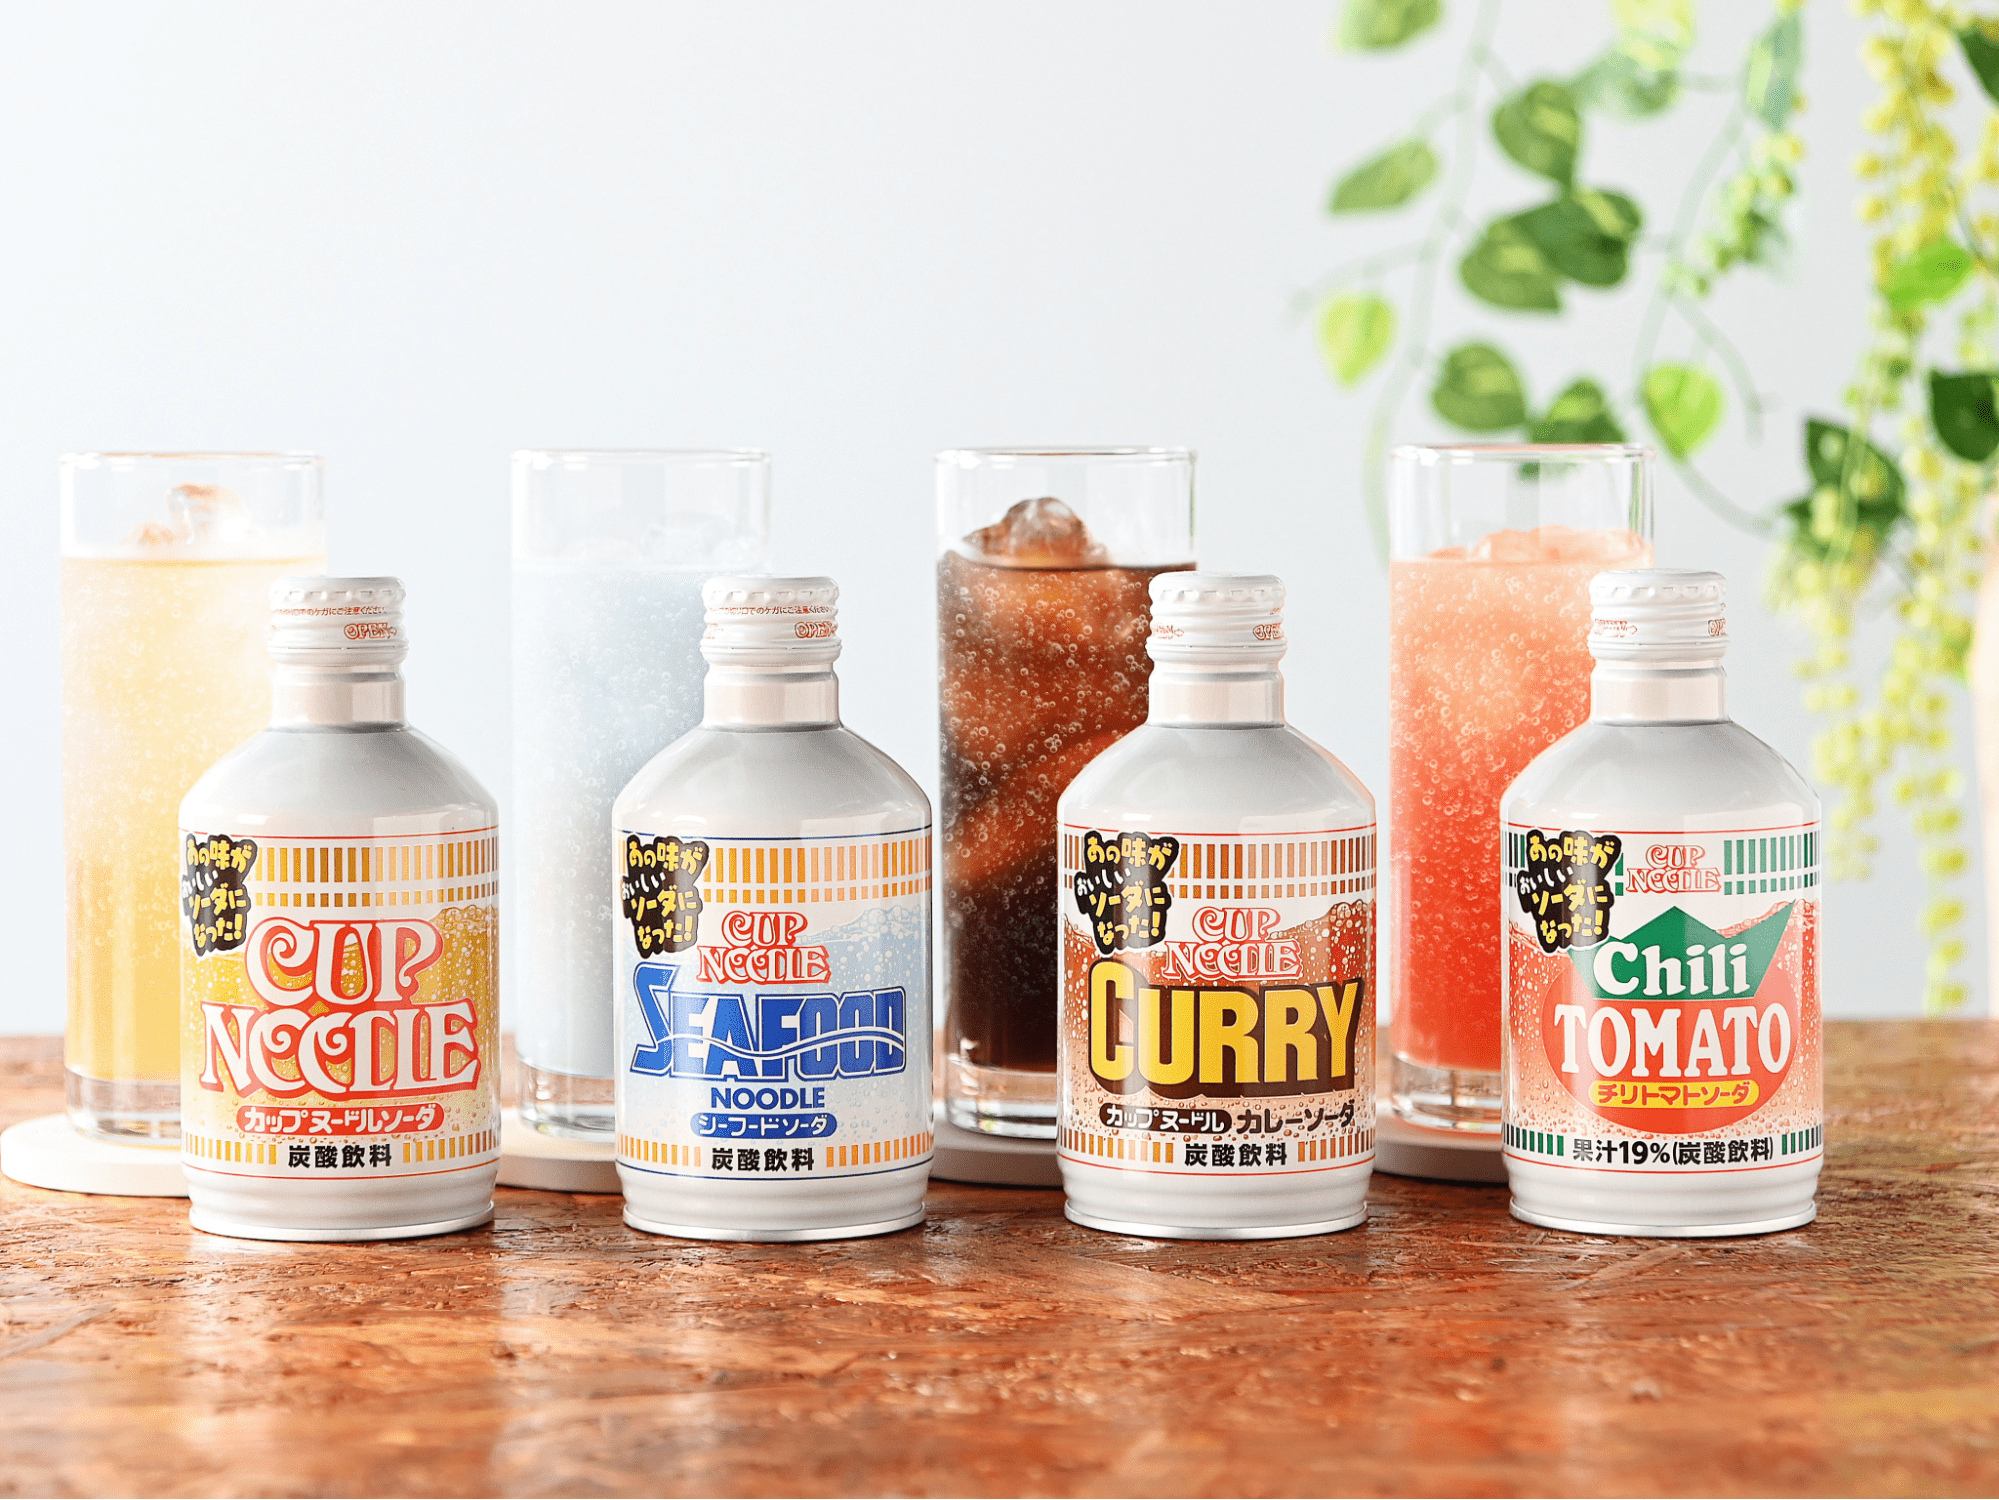 nissin cup noodle soda - new lineup